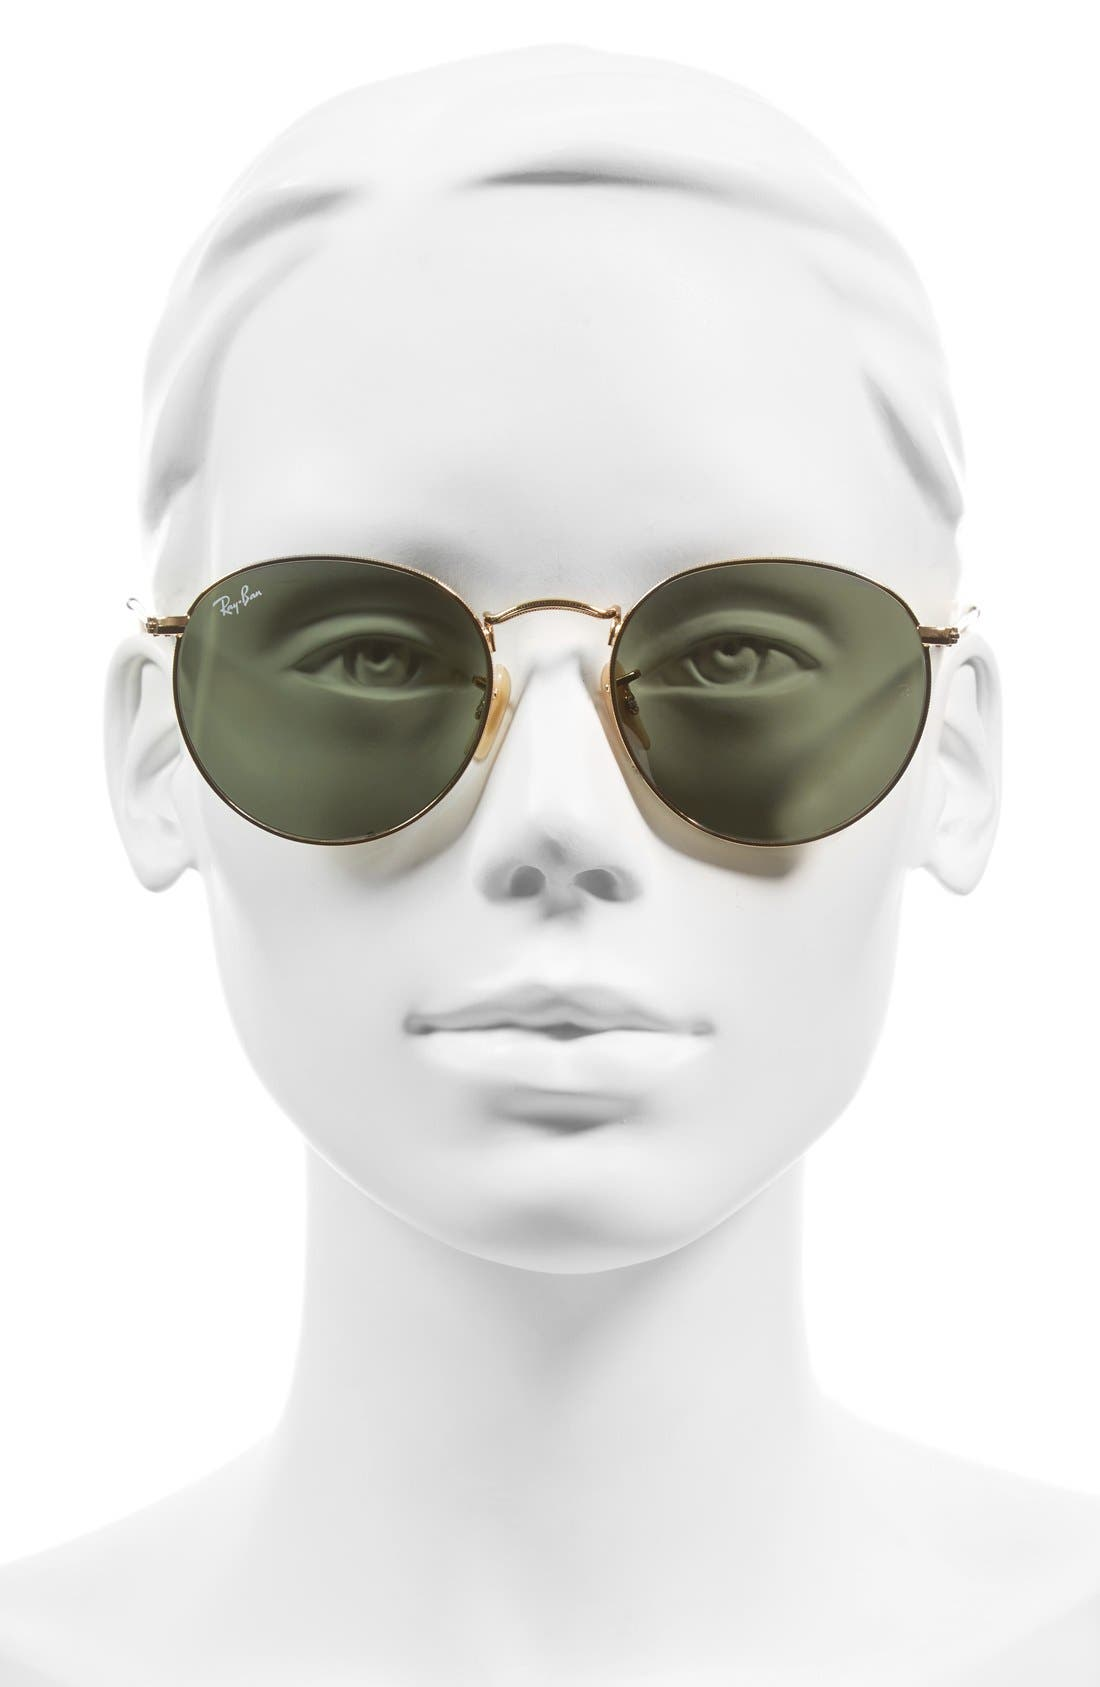 Image result for ray ban icon sunglasses